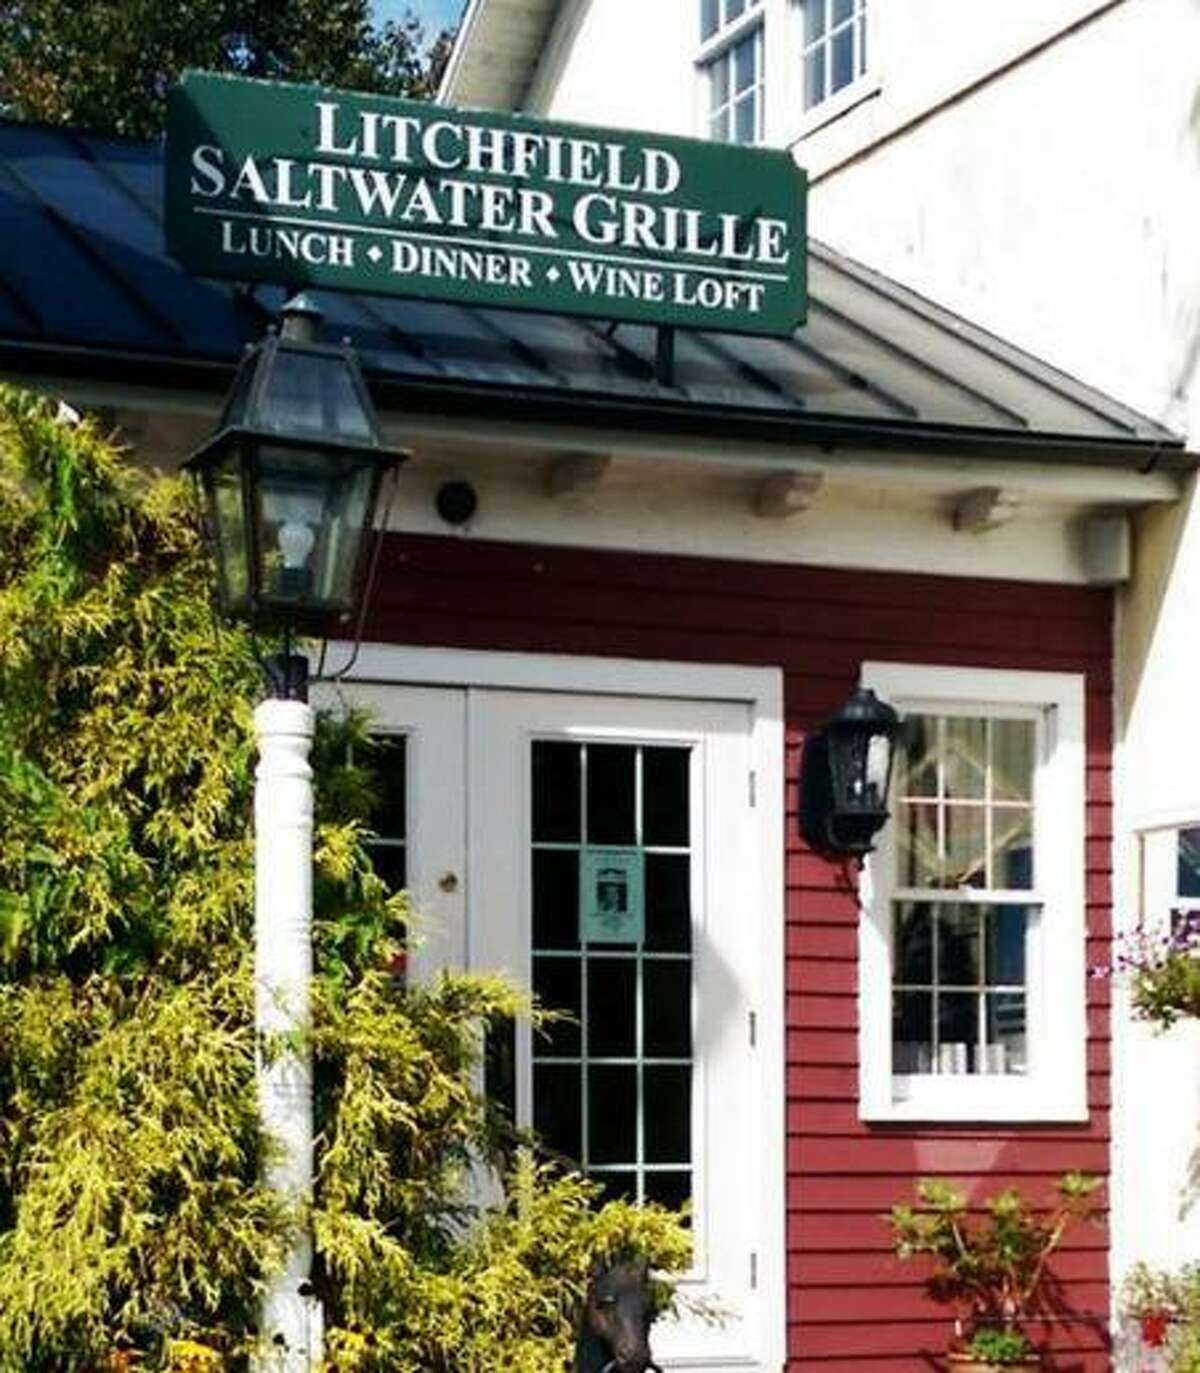 The Litchfield Saltwater Grille is creating a new restaurant inside the former Sliders, shown here before its opening in 2019. The owners are bringing Salt 2.0 to Torrington, a variation on their popular eatery on Village Green Drive in Torrington, which they have owned and operated since 2012.